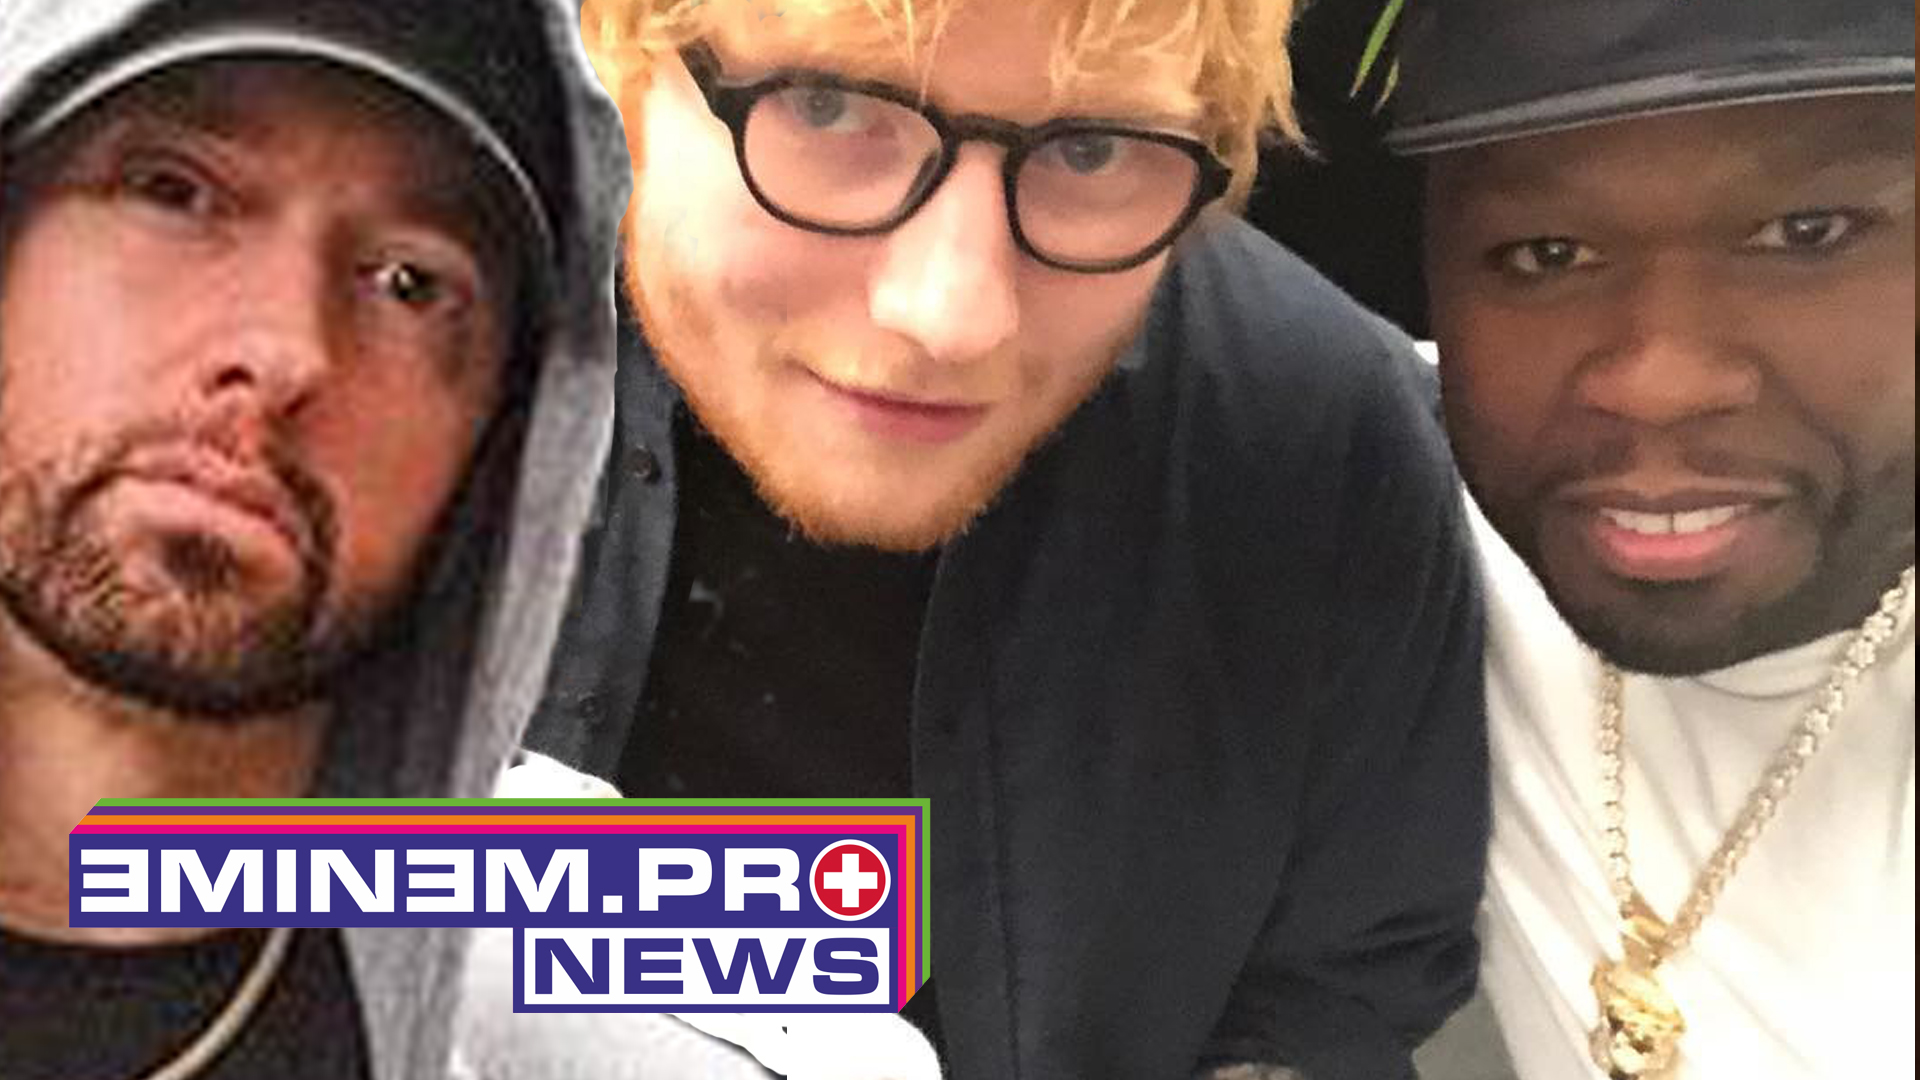 Confirmed: Remember The Name on Ed Sheeran's